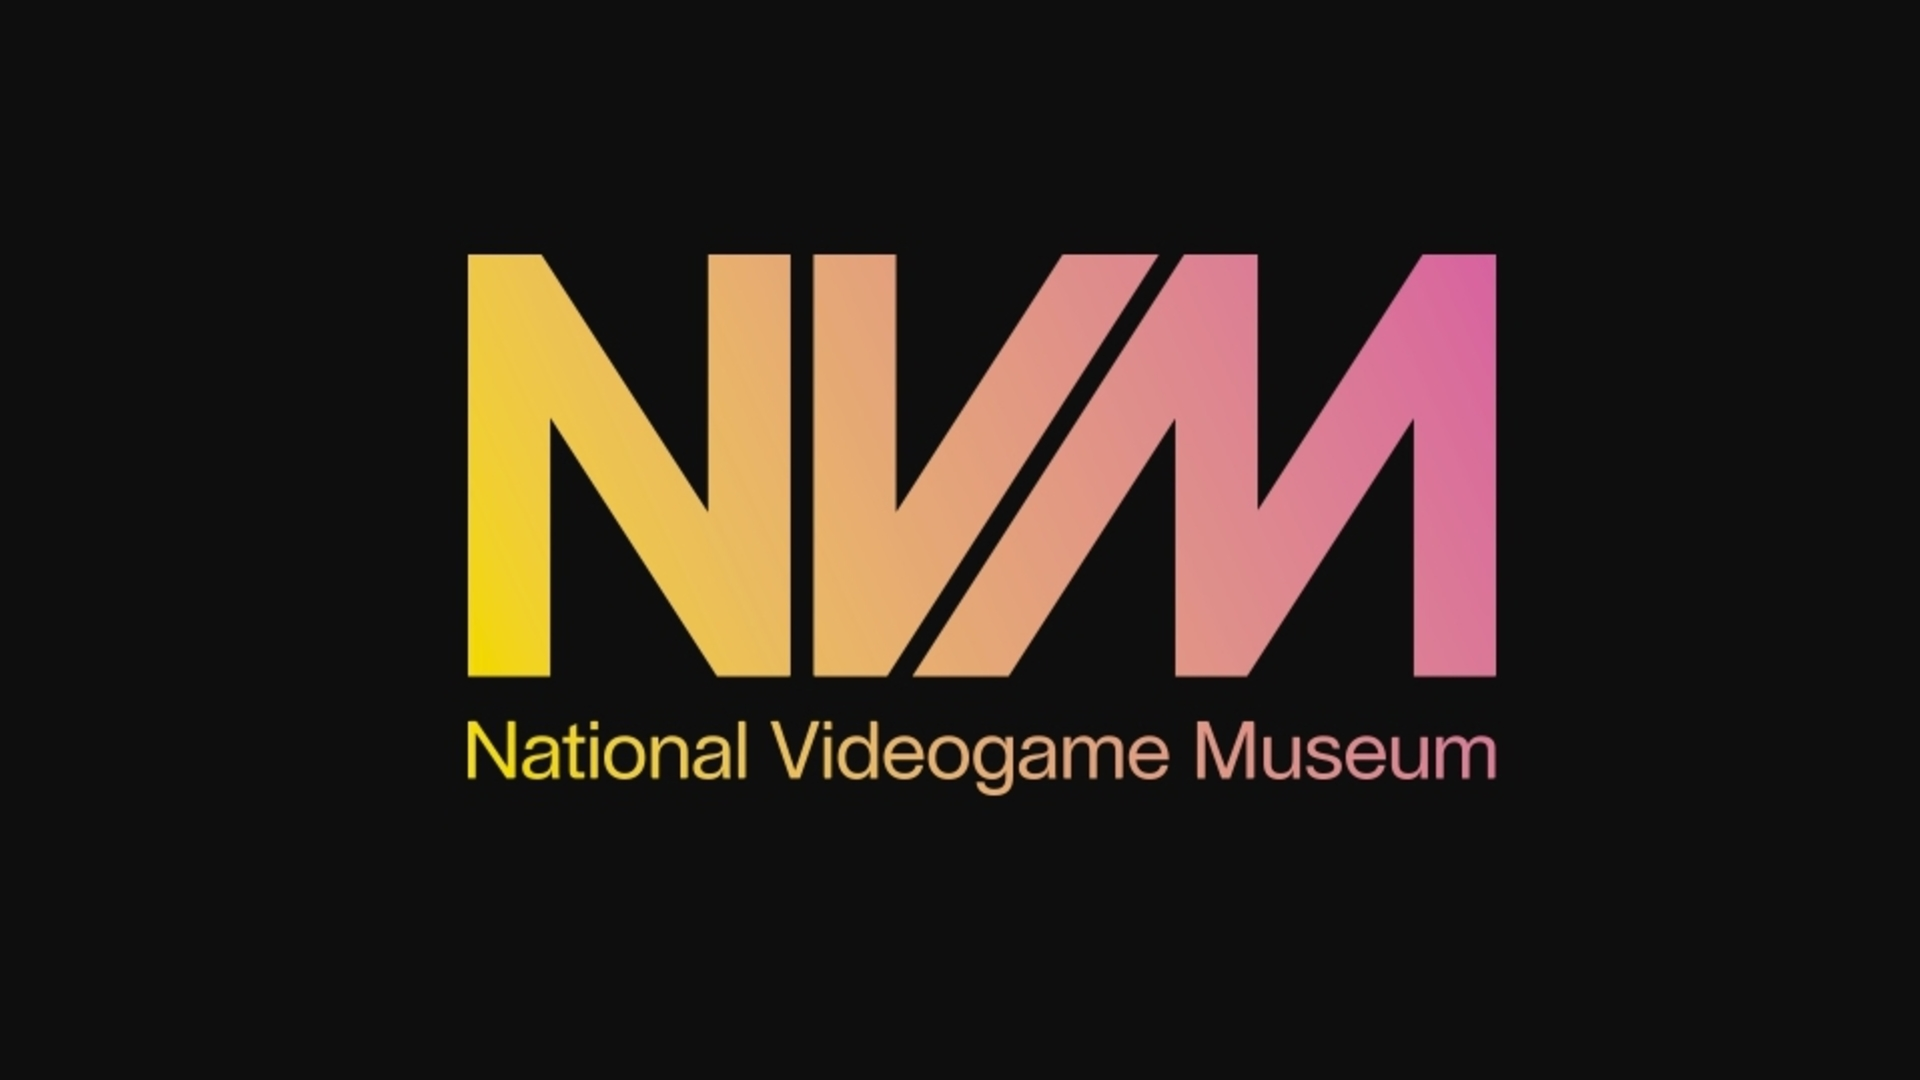 National Videogame Museum - Museo